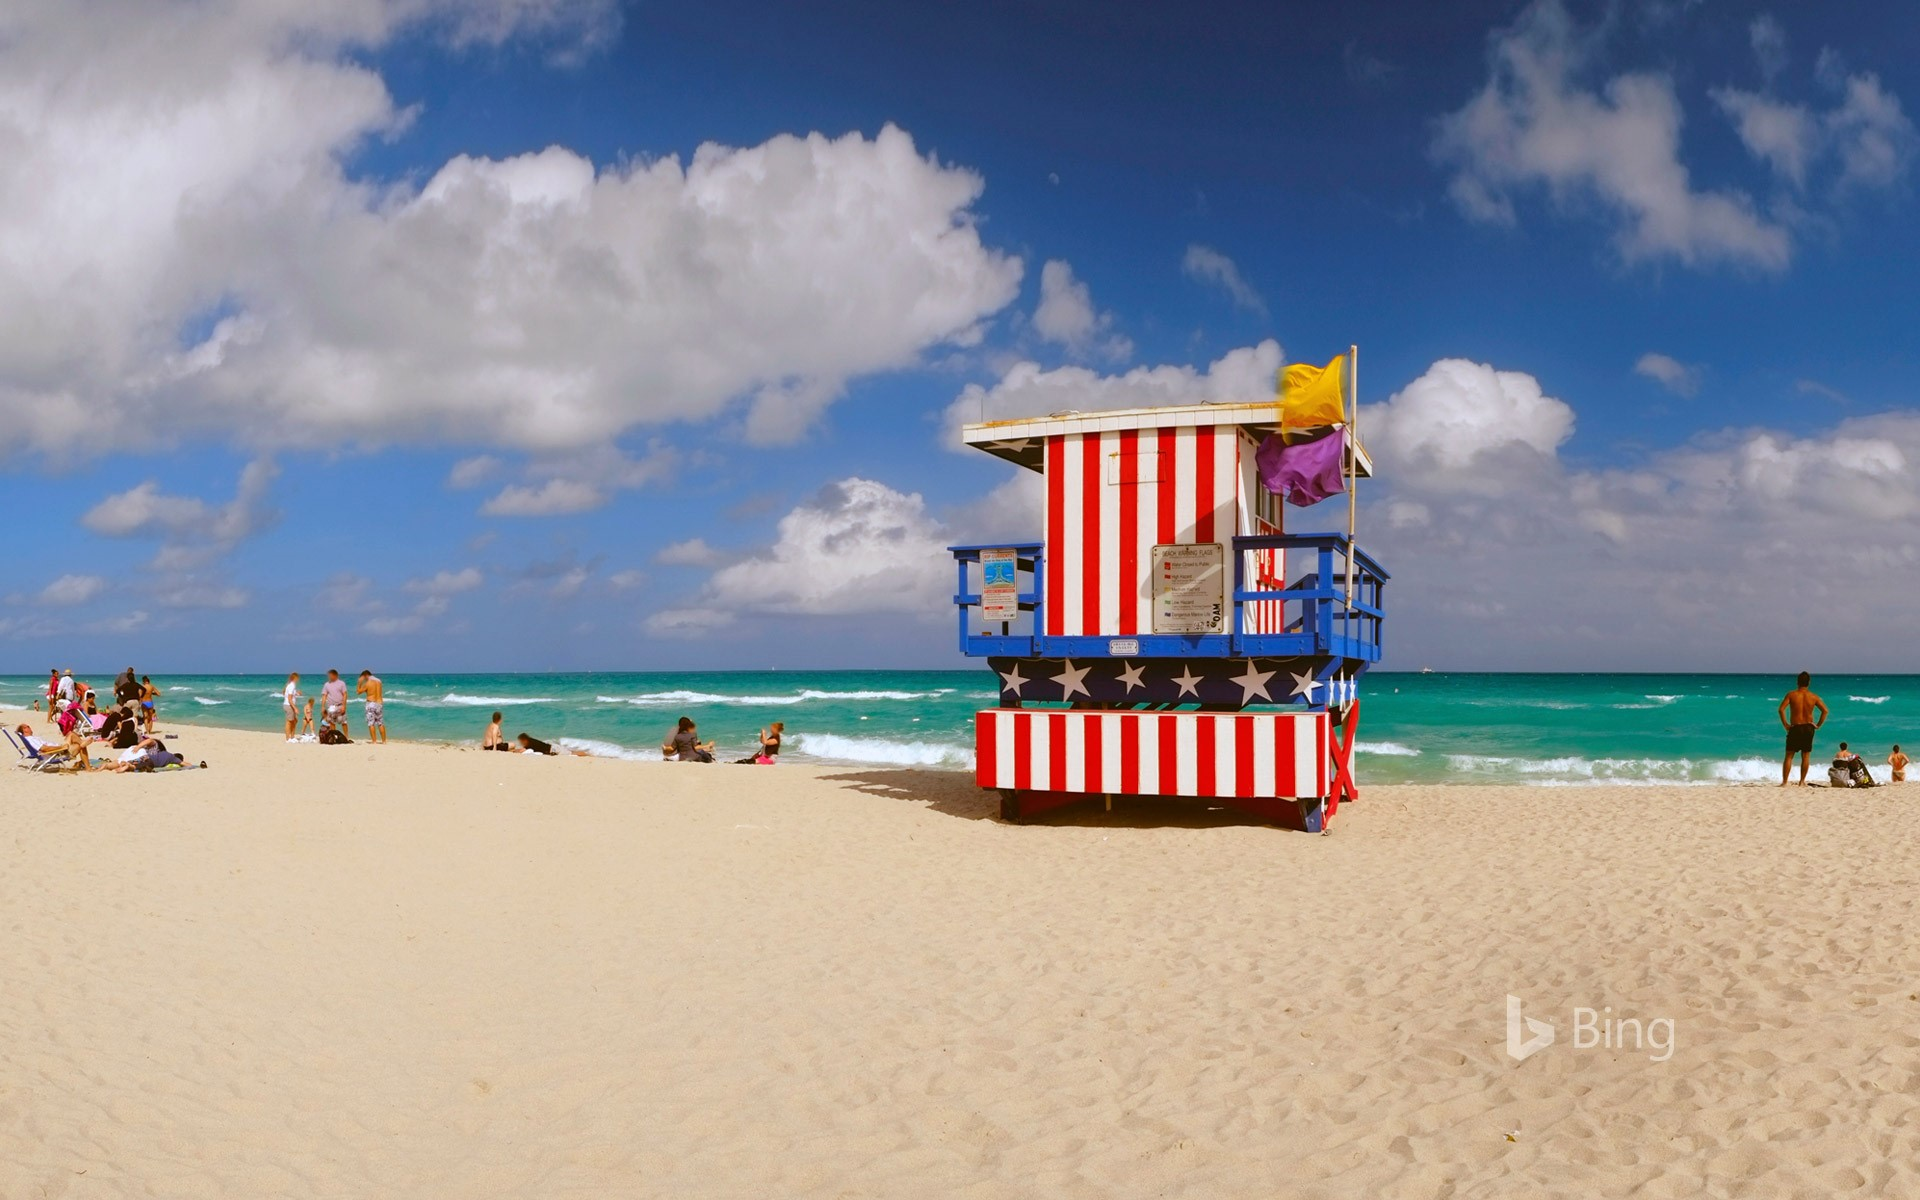 Lifeguard station at Lummus Park in South Beach, Miami, Florida